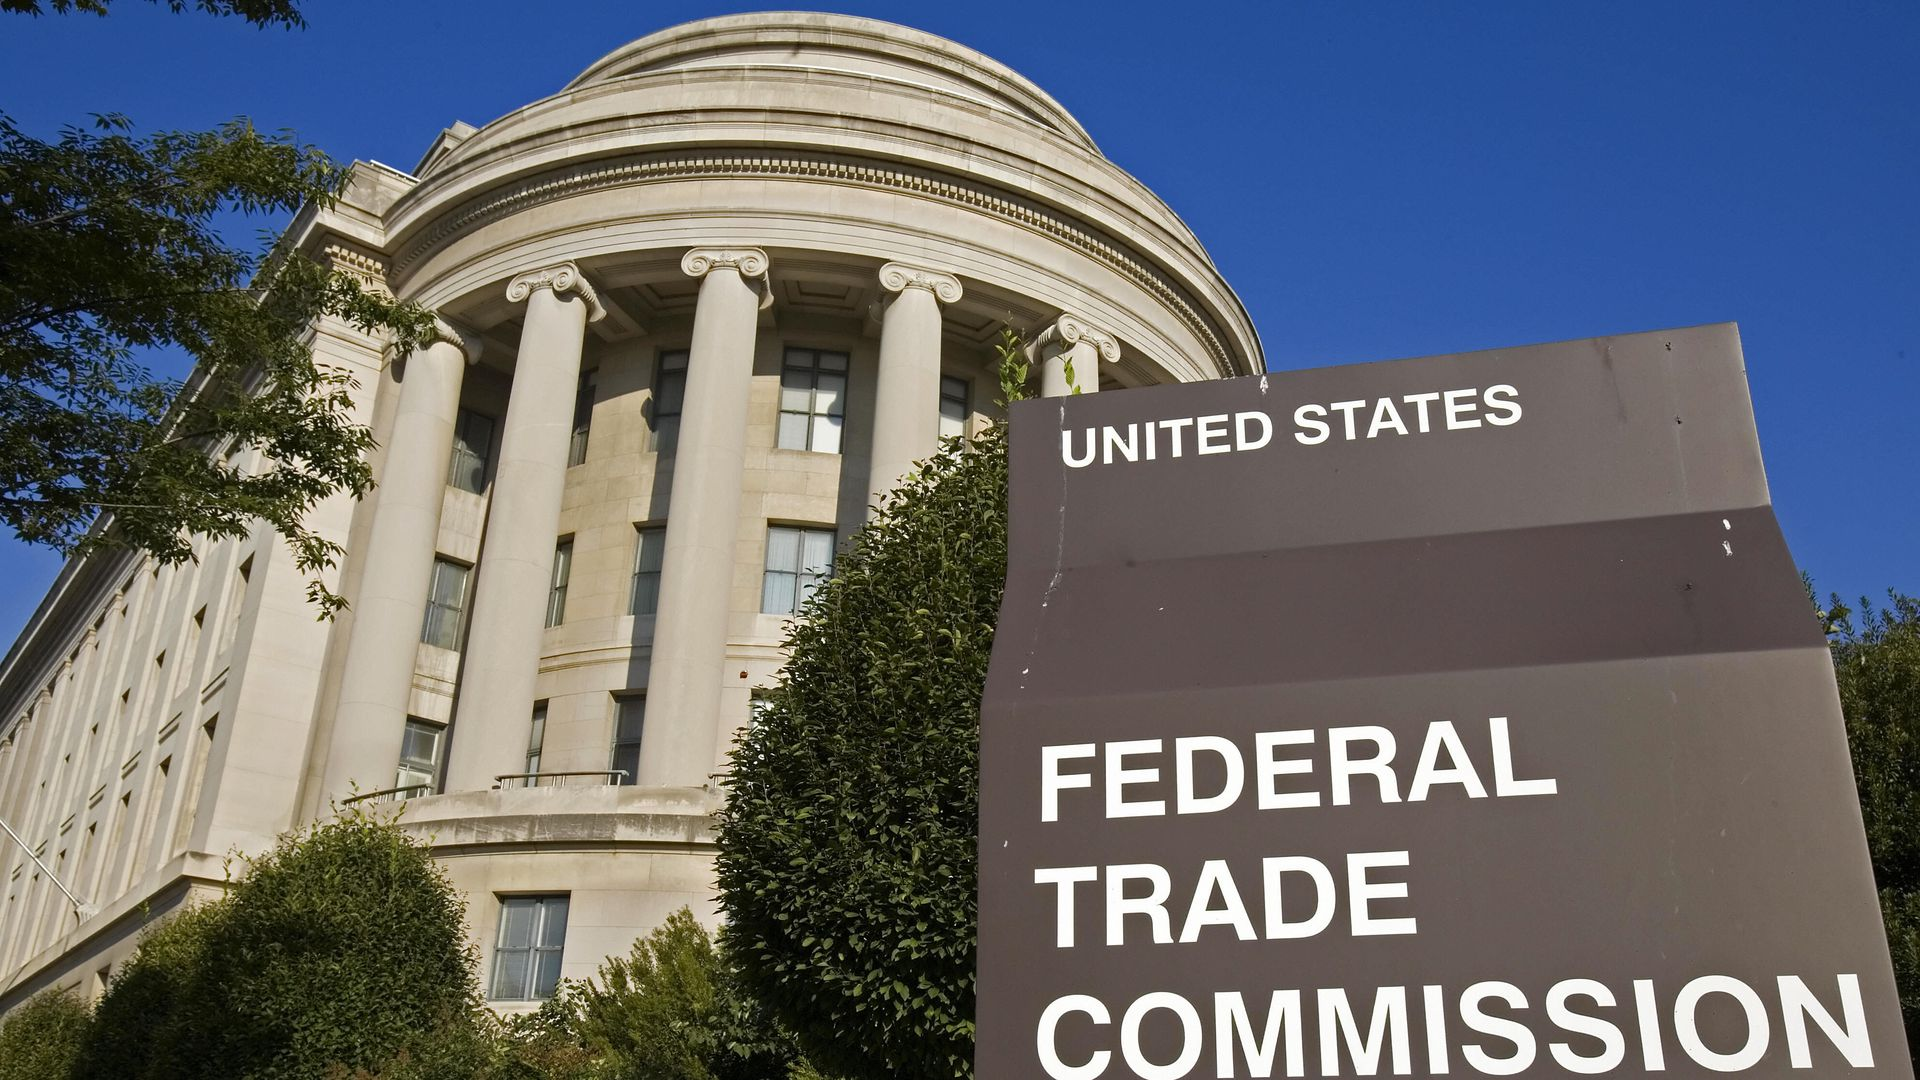 The Federal Trade Commission's building in Washington, DC, stands behind a sign for the agency